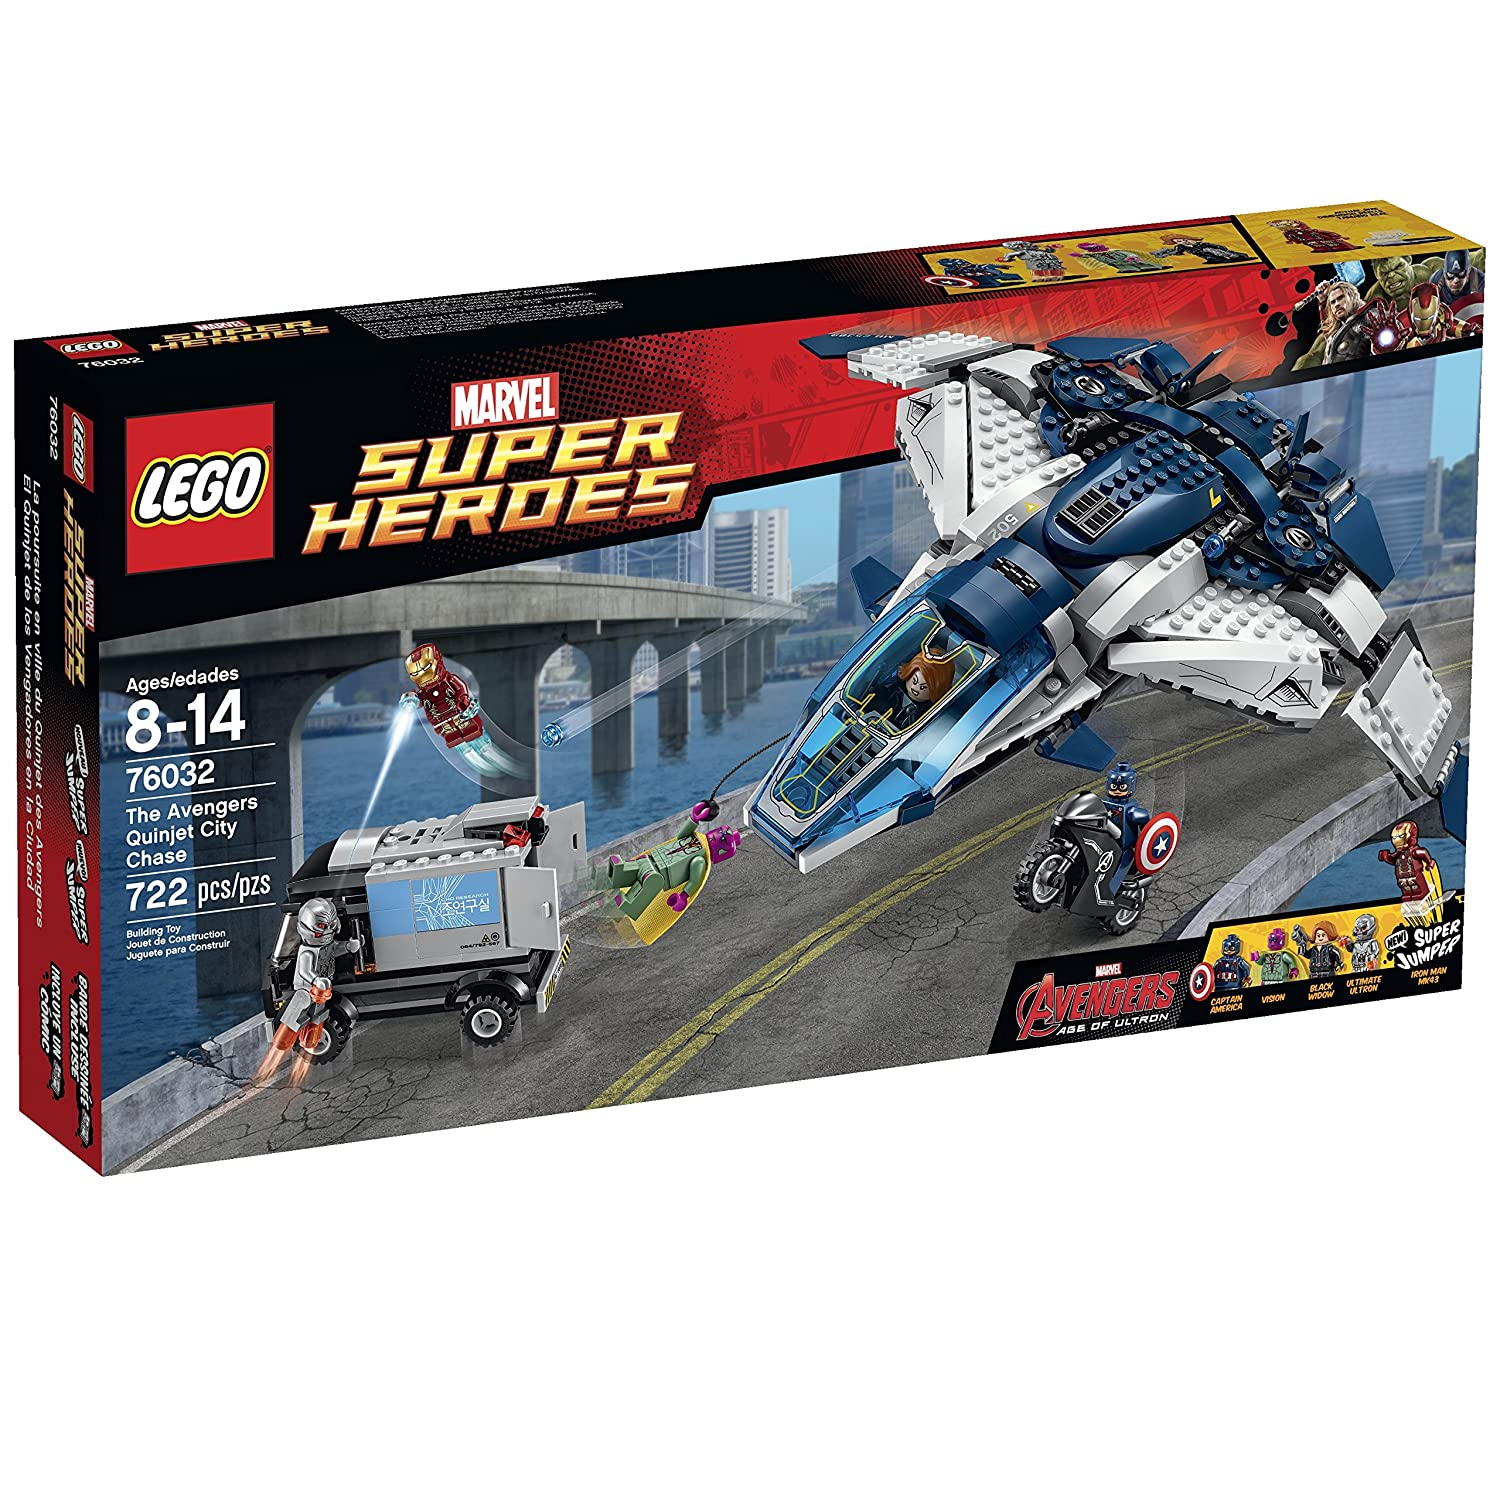 Top 9 Best LEGO Captain America Sets Reviews in 2020 9